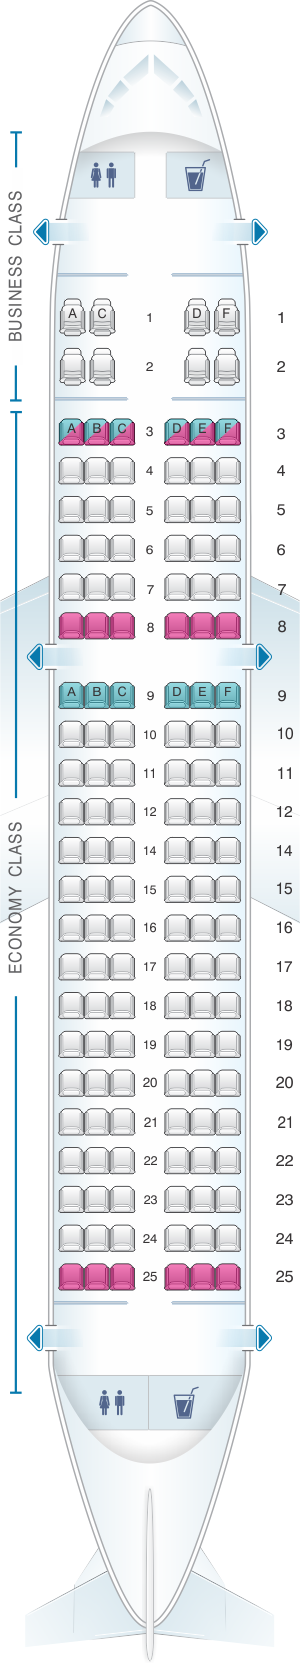 Seat map for Bulgaria Air Airbus A319